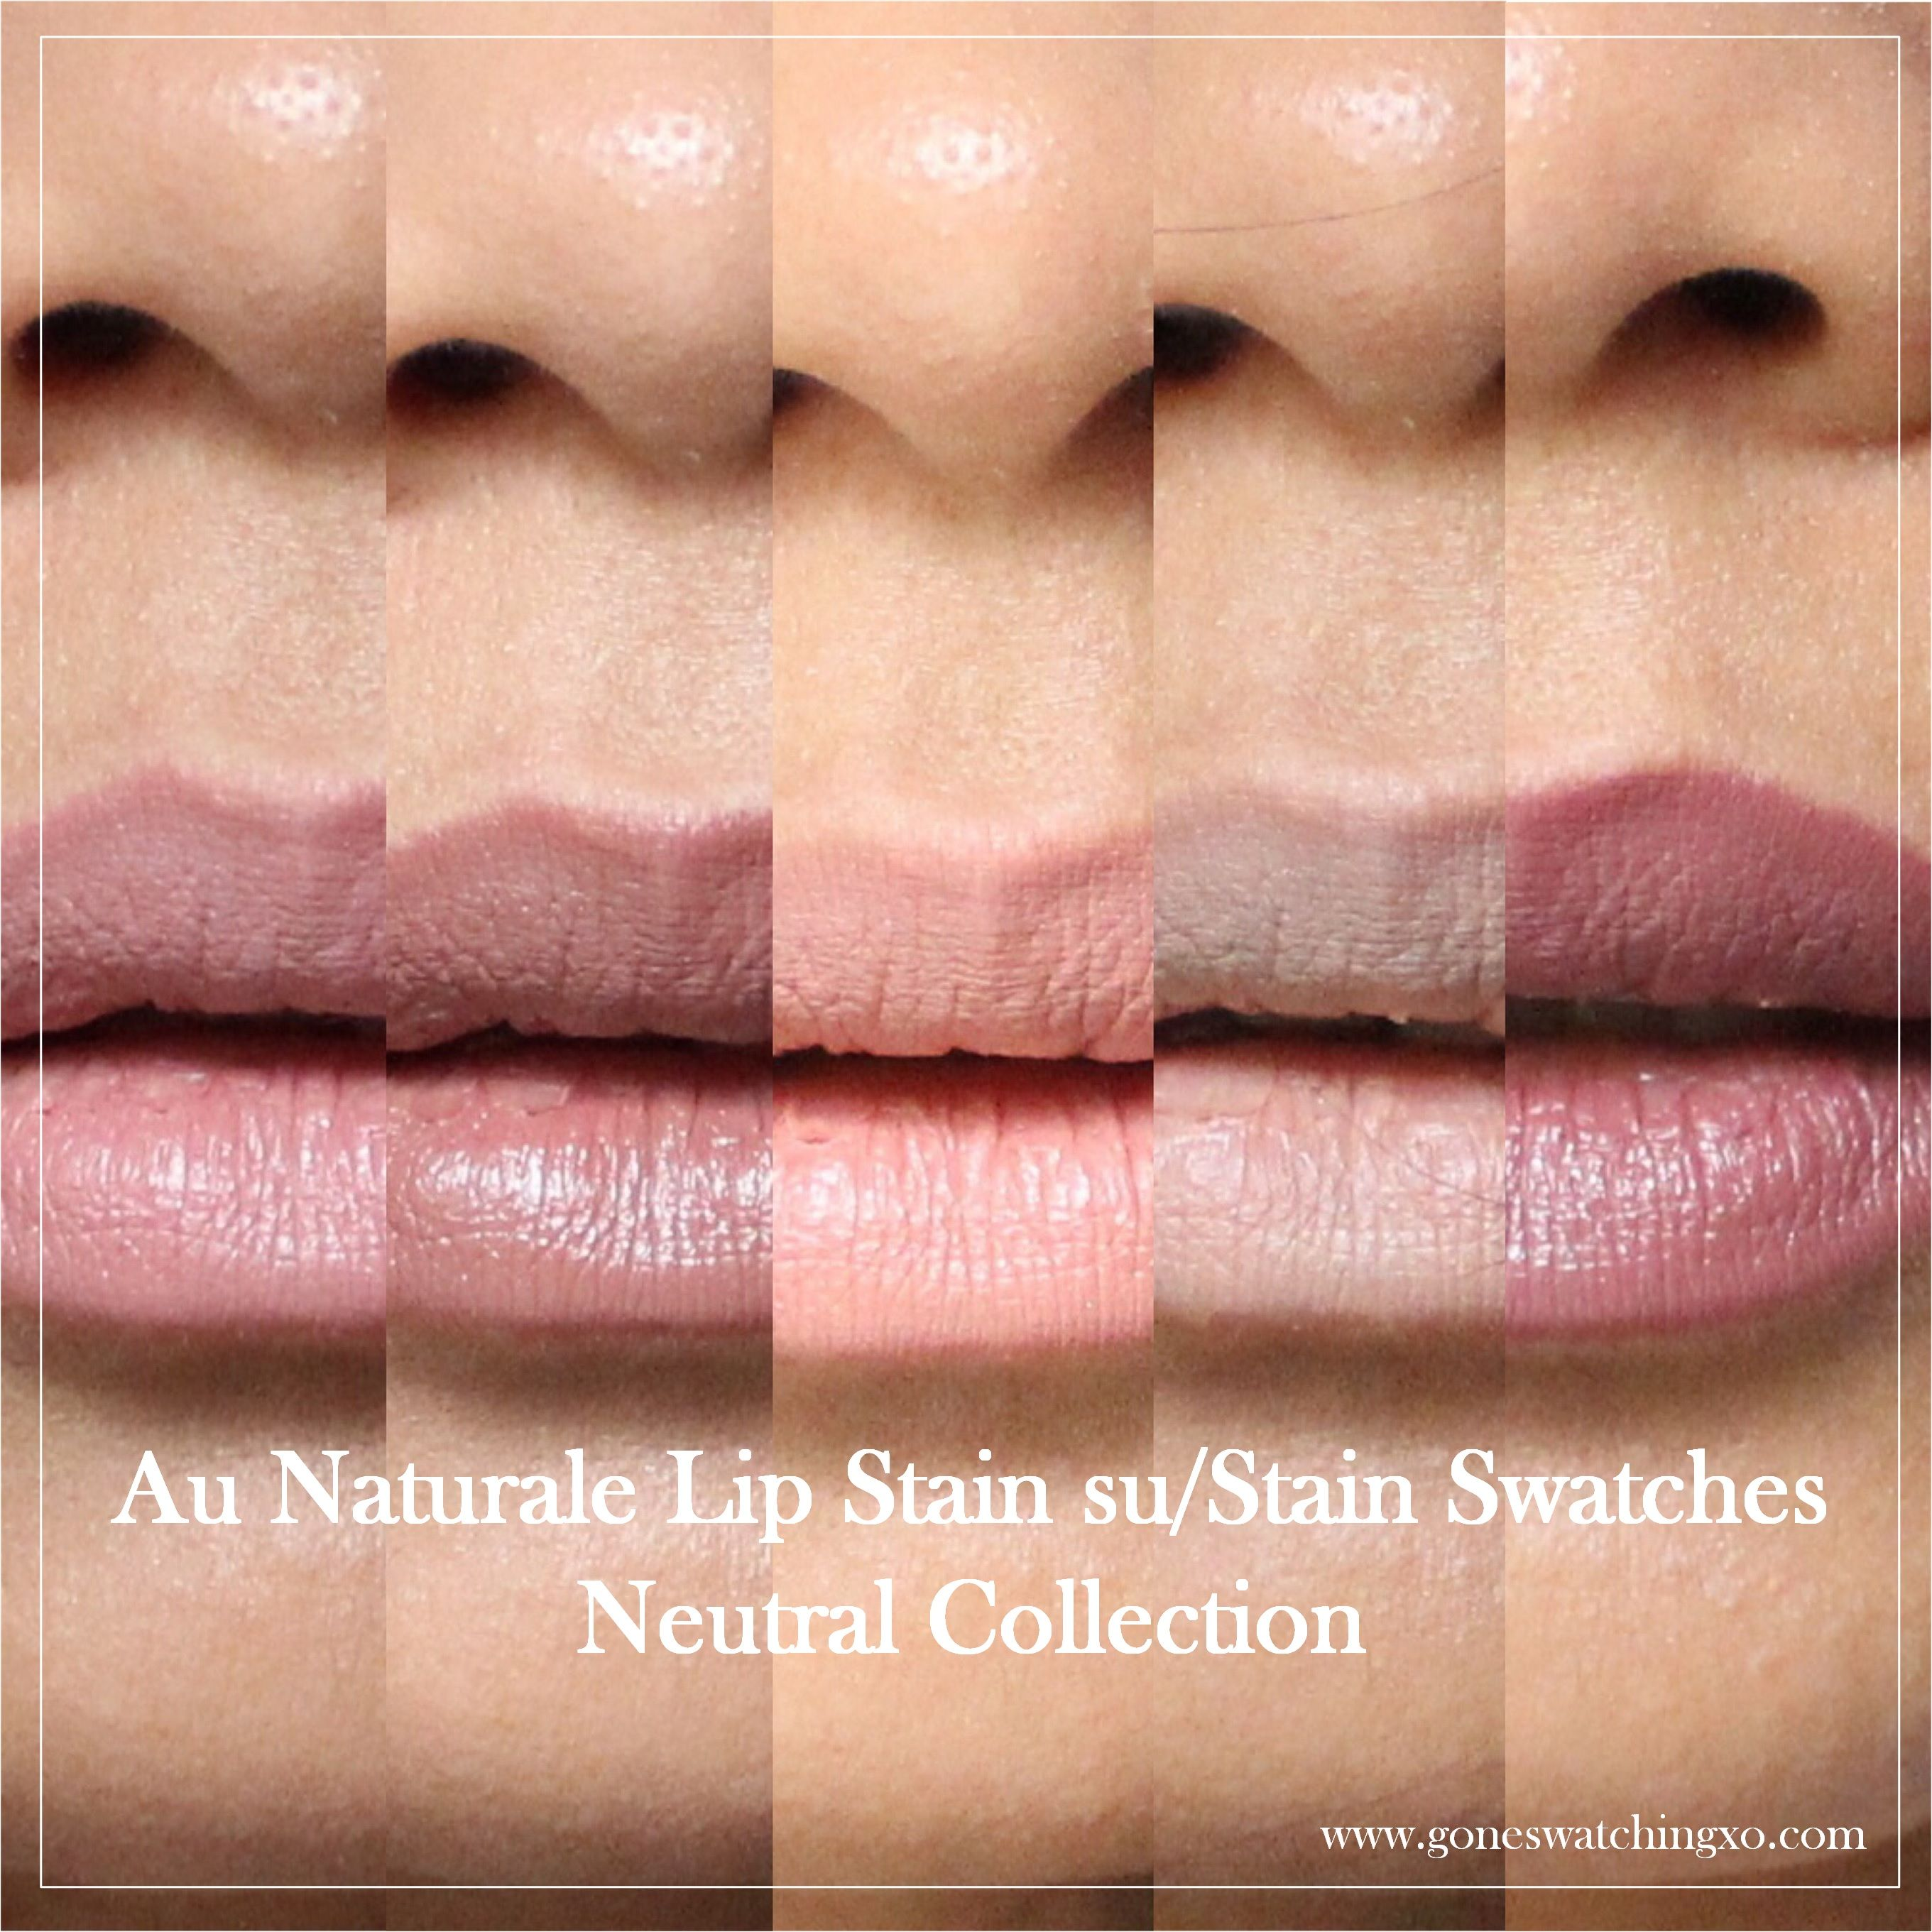 Au Naturale Cosmetics Su/Stain Matte Lip Stain Swatches